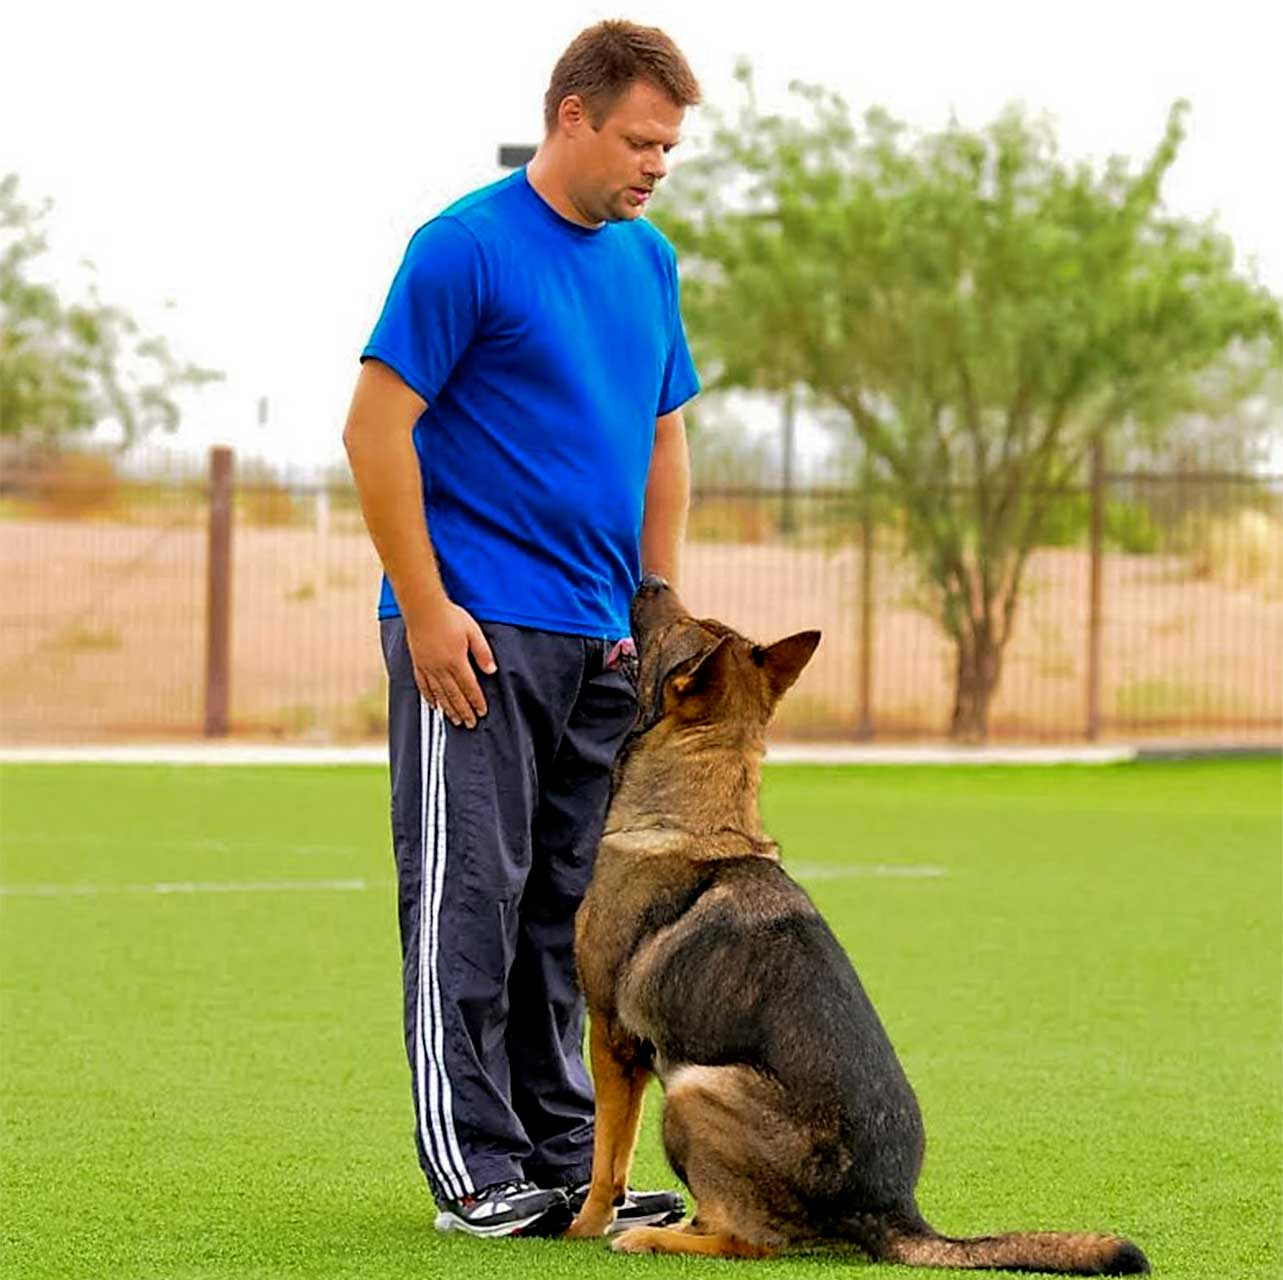 dog trainer, quality k9, tino reinke, dog training phoenix